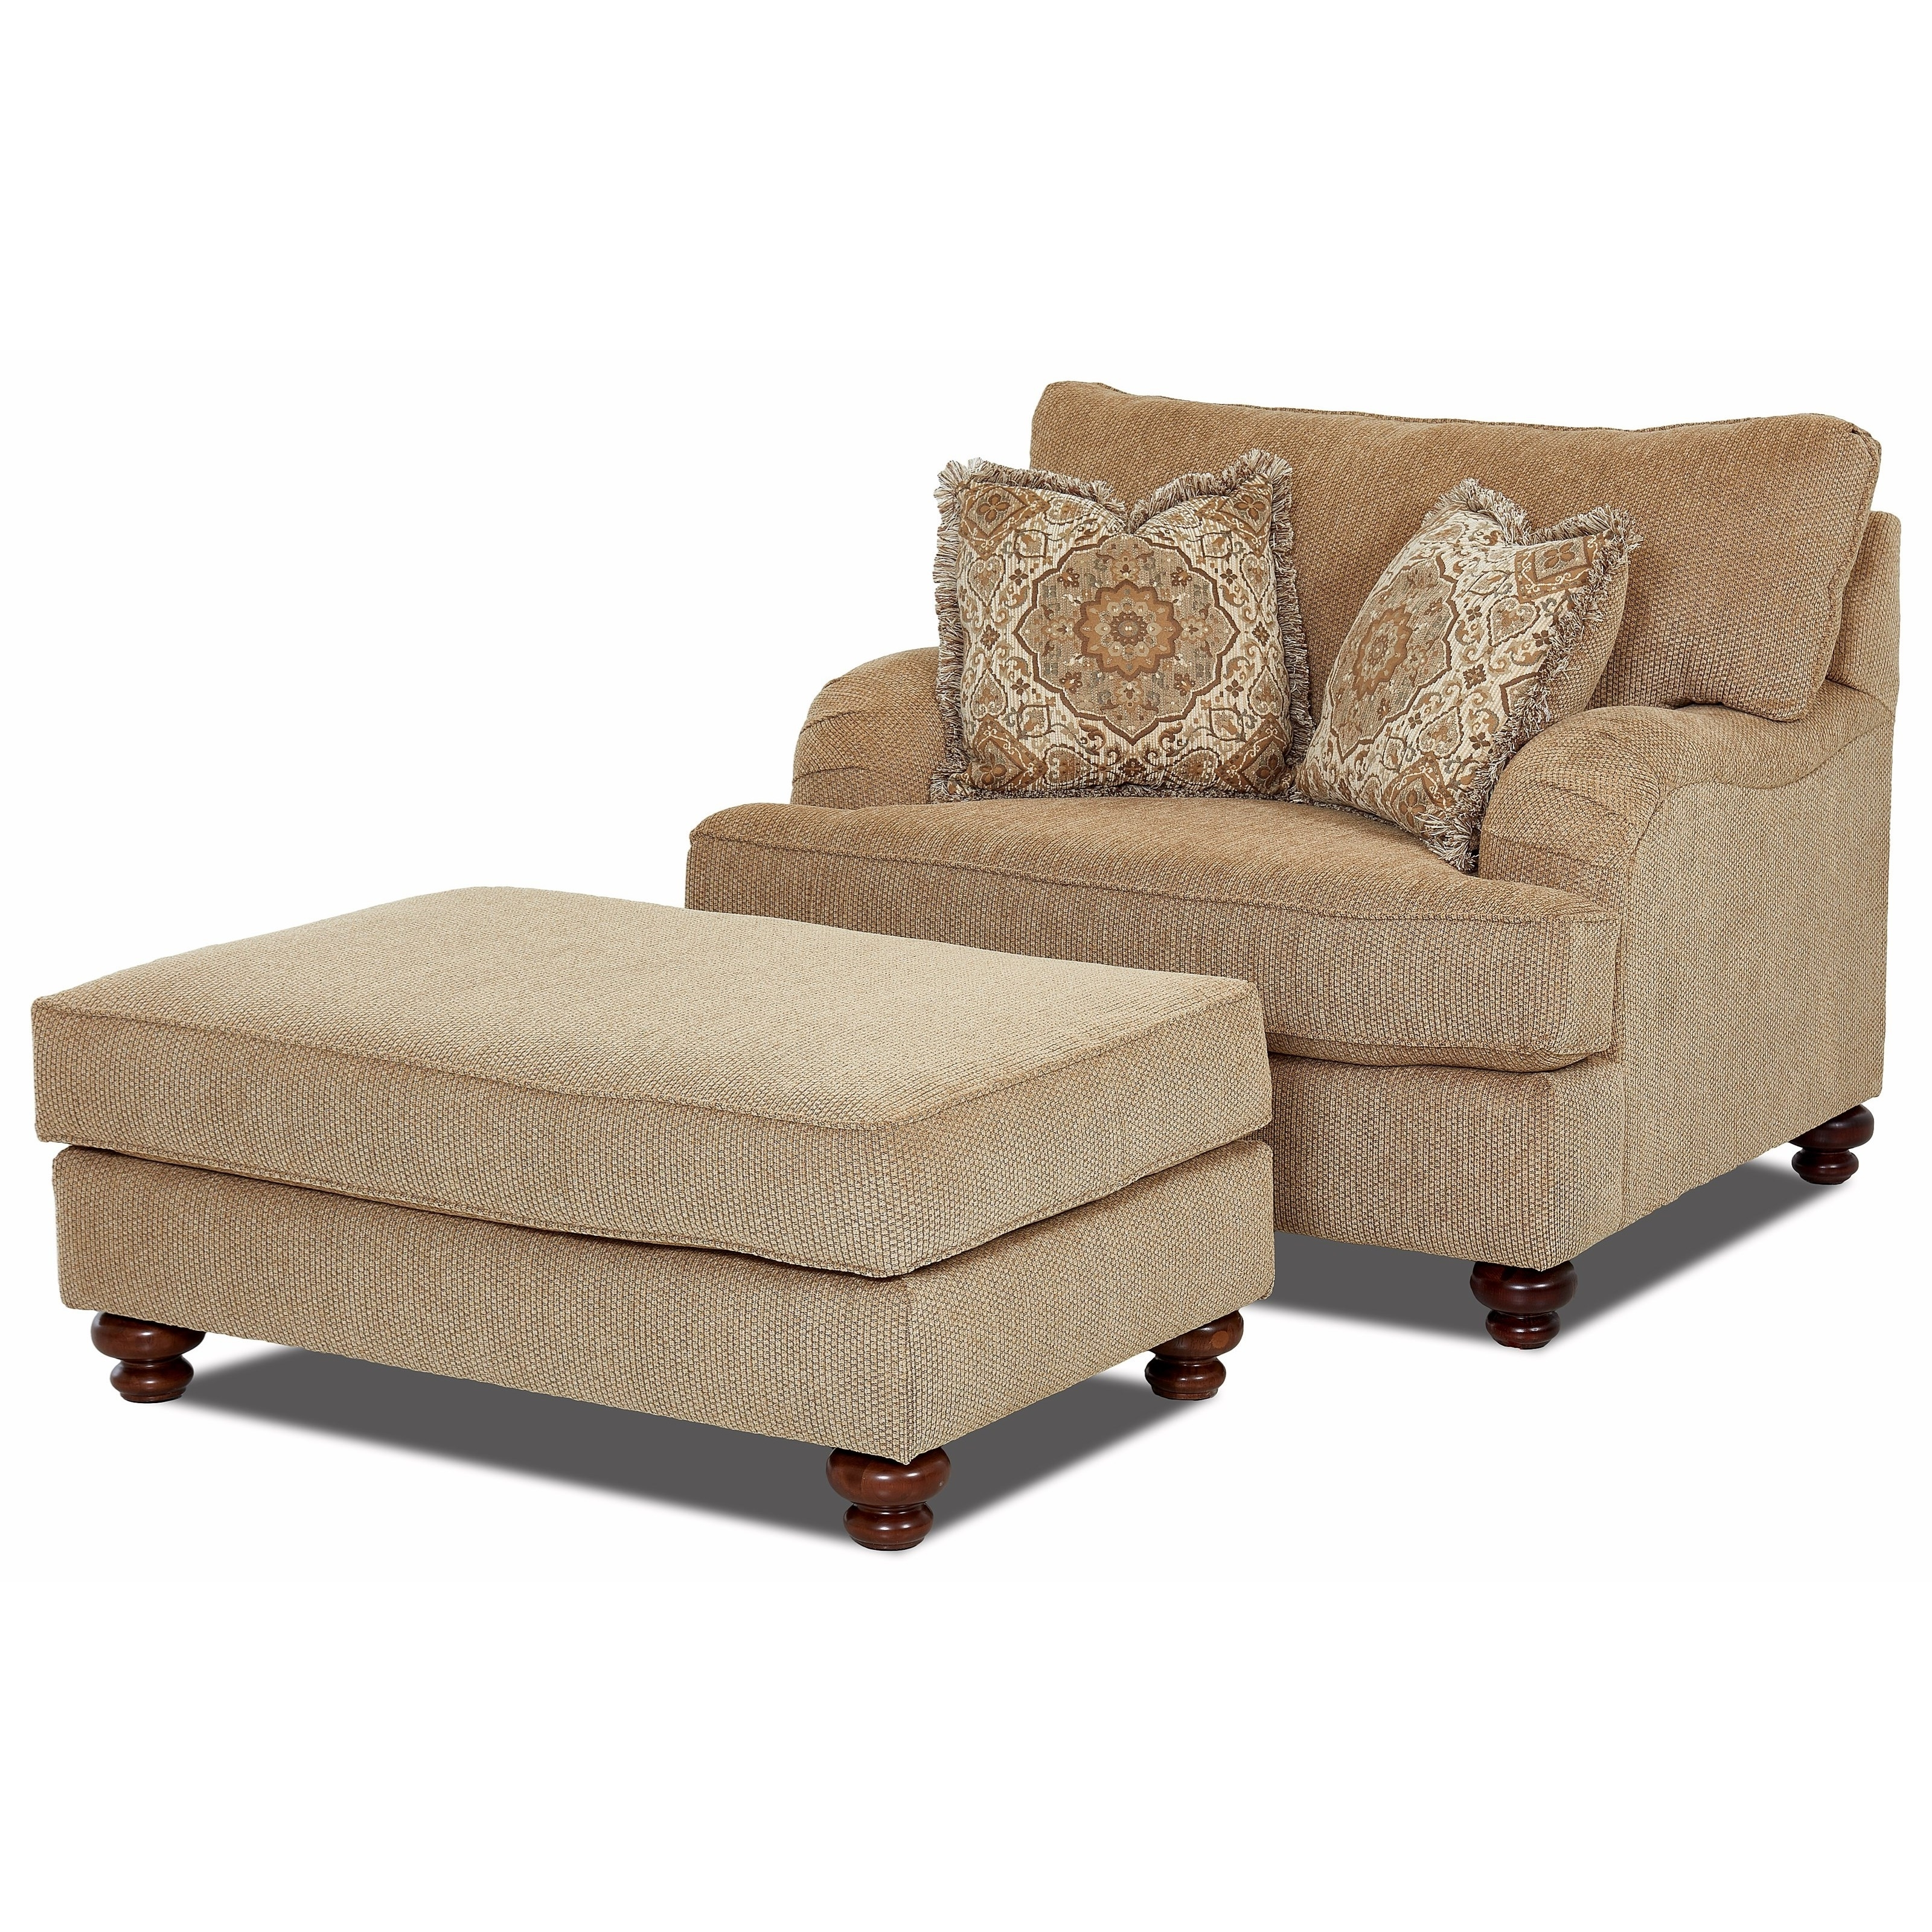 Chairs With A Half Chaise With Newest Klaussner Declan Oversized Chair And Ottoman Set (View 5 of 15)